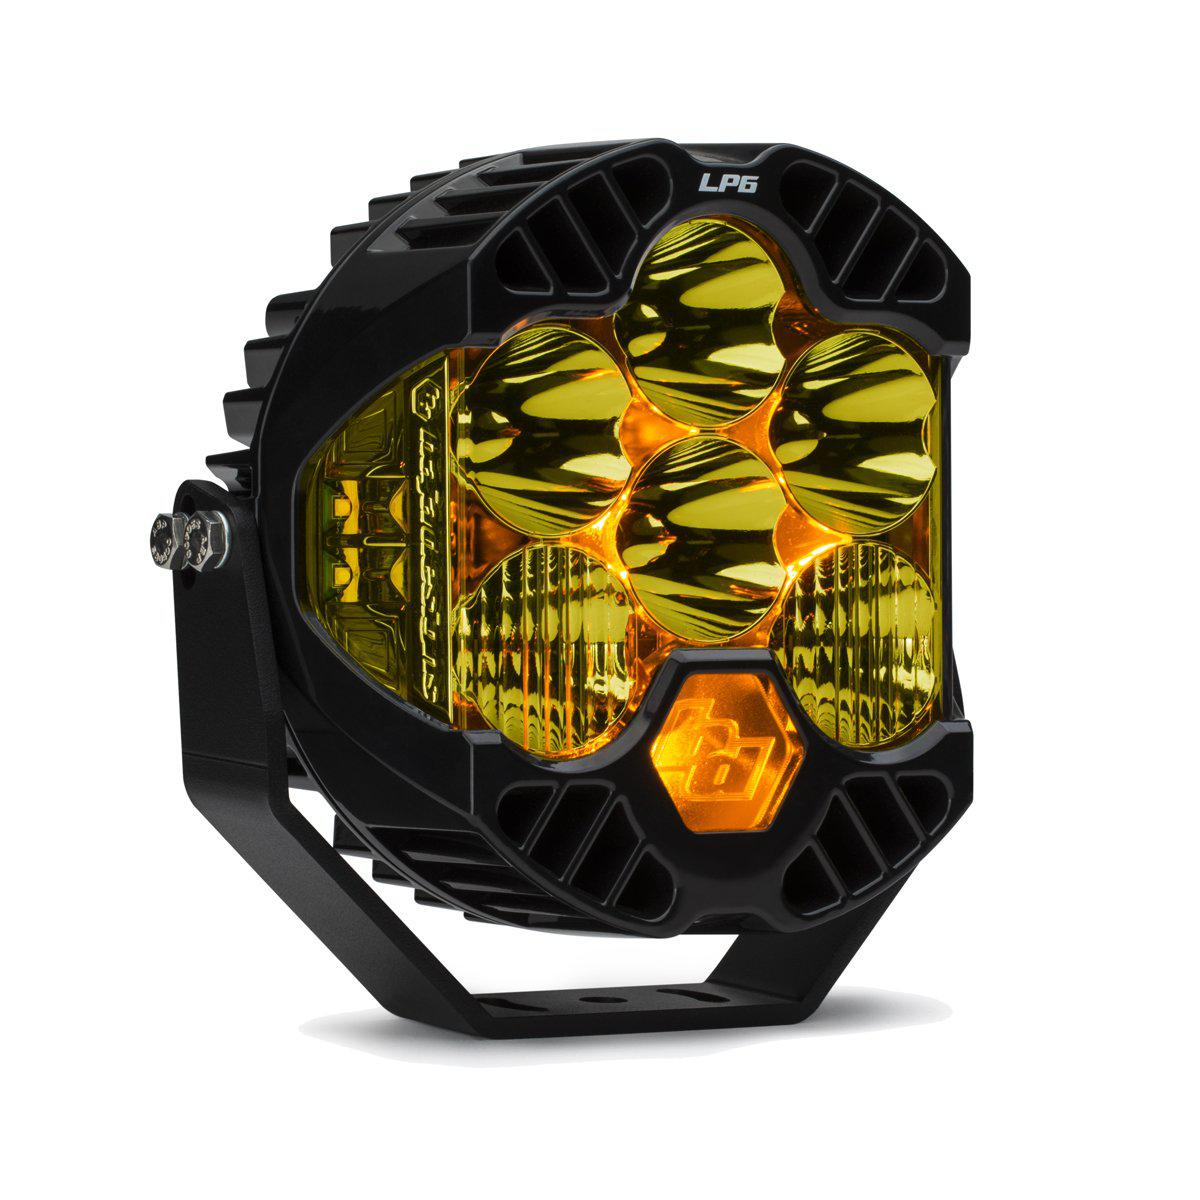 LP6 Pro LED-Lighting Pods-Baja Designs-Driving Combo-Amber-Black Market UTV